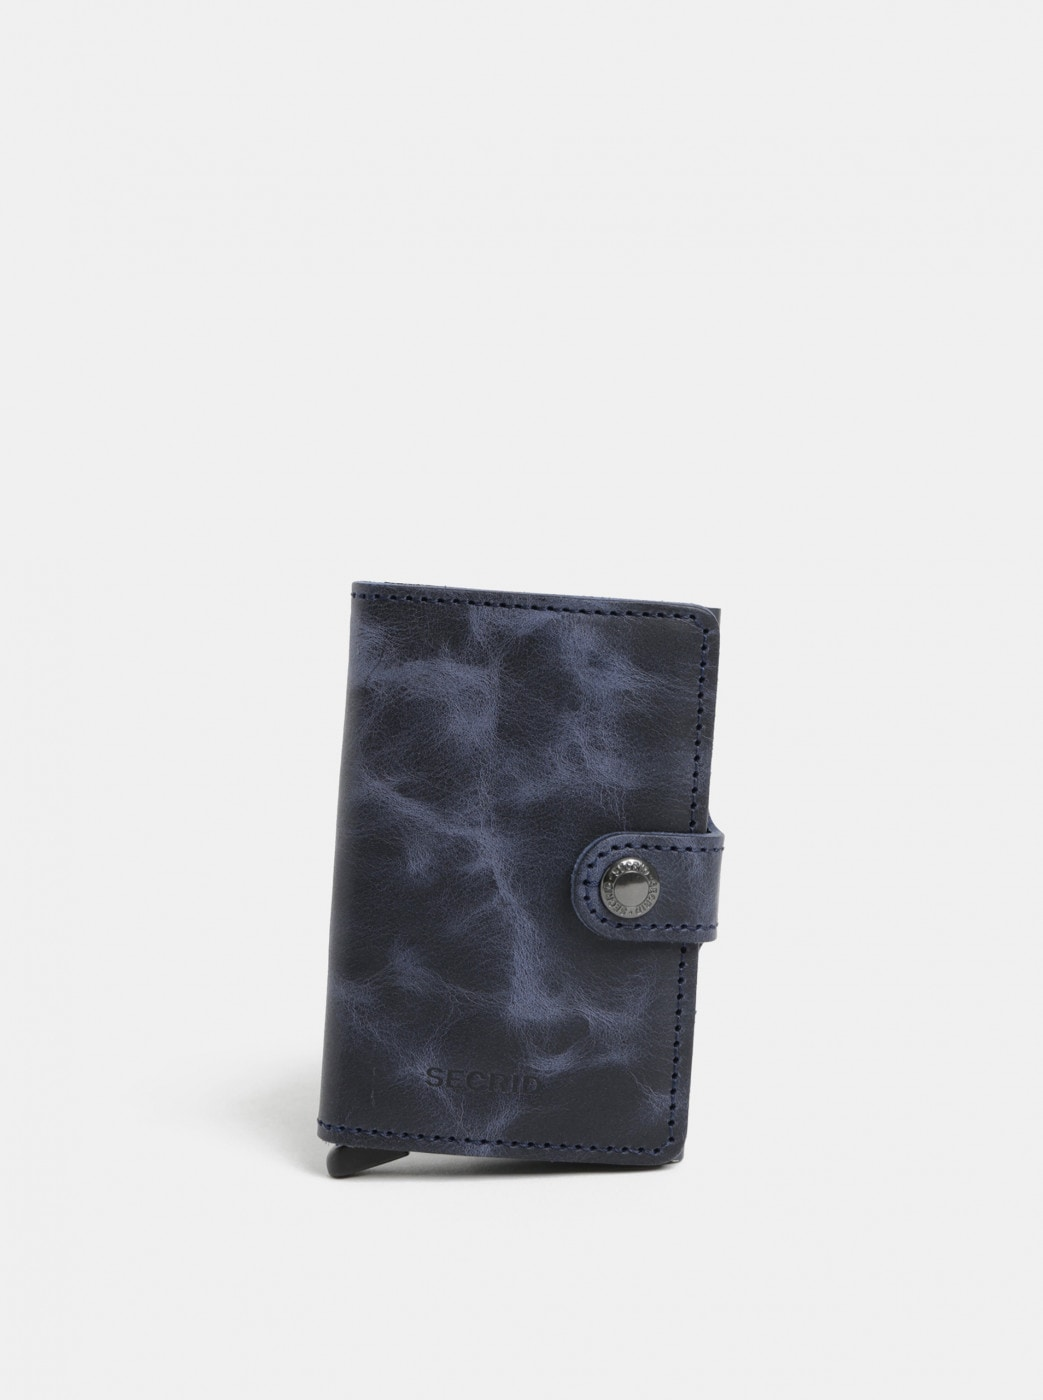 Blue Leather Wallet with Aluminum Case with RFID Secrid Miniwallet